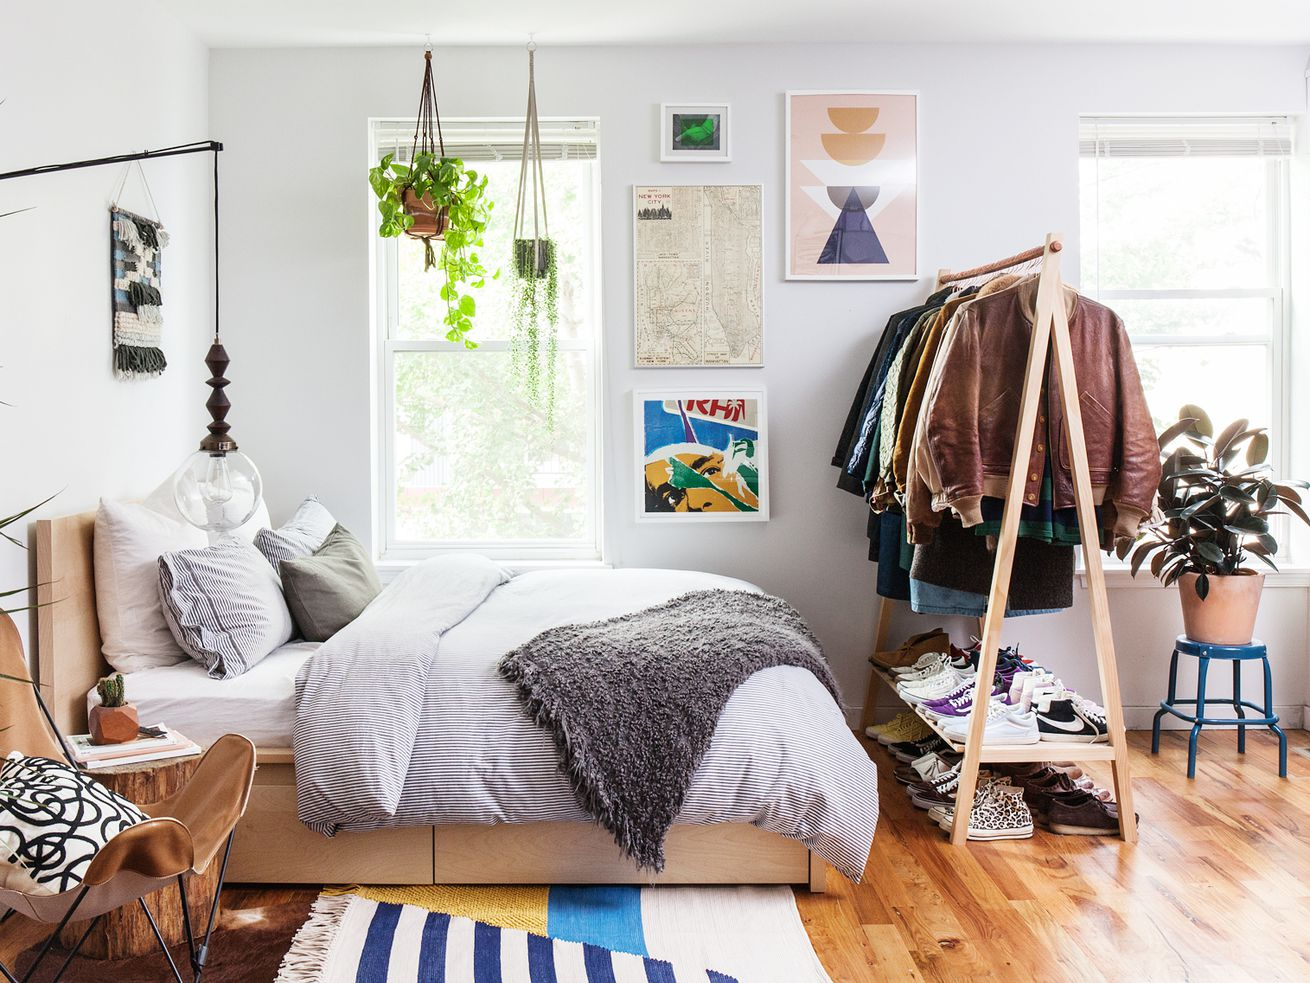 """A stylish <a class=""""ql-link"""" href=""""https://philly.curbed.com/2016/10/31/13476786/fishtown-home-tour-small-space-natto-balladares"""" target=""""_blank"""">600-square-foot studio</a> in Philadelphia."""